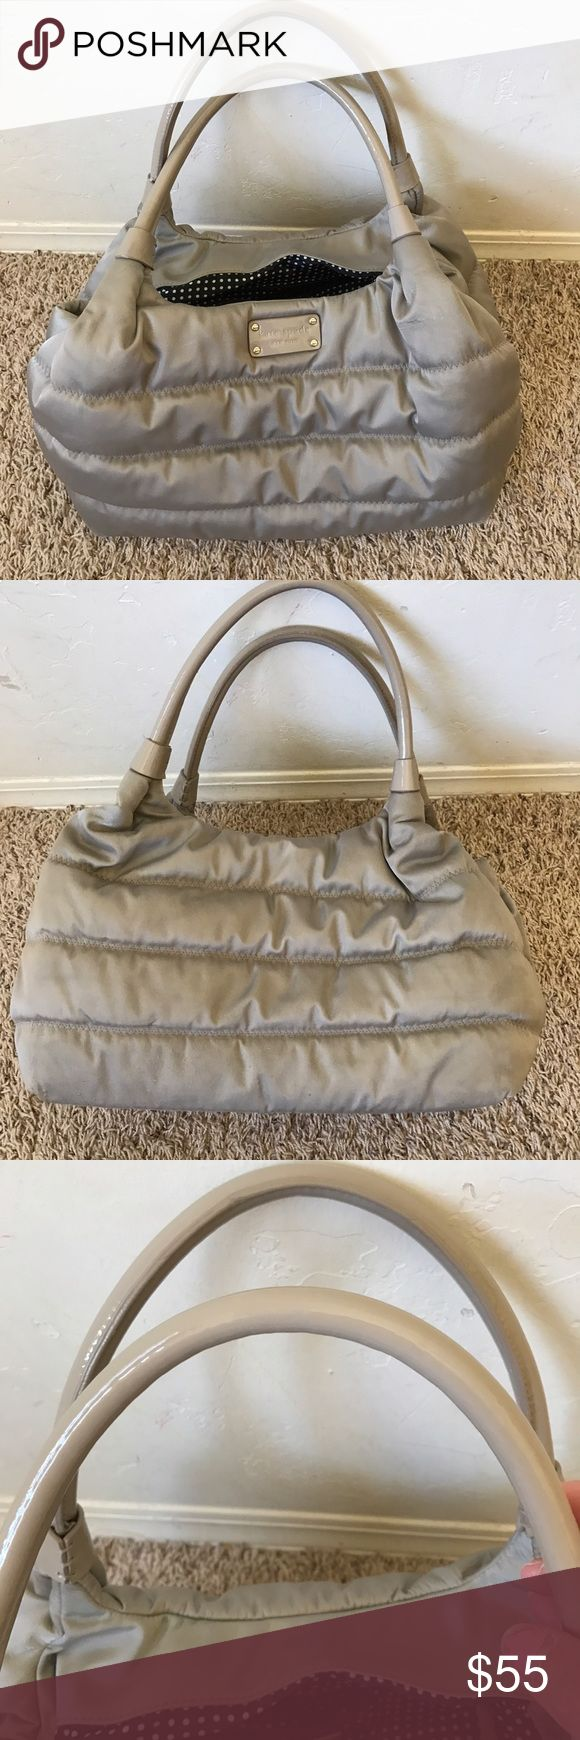 """KATE SPADE STEVIE ALPINE HILLS NYLON PUFFER Bag 100% authentic  Color Taupe gray  Nylon Handle 8"""" Width 14"""" Height 9.5"""" Smoke pet free home  Straps perfect no peeling Inside clean no stains  Little crinkle in material see picture  Purse in very nice overall perfect except what noted kate spade Bags Shoulder Bags"""